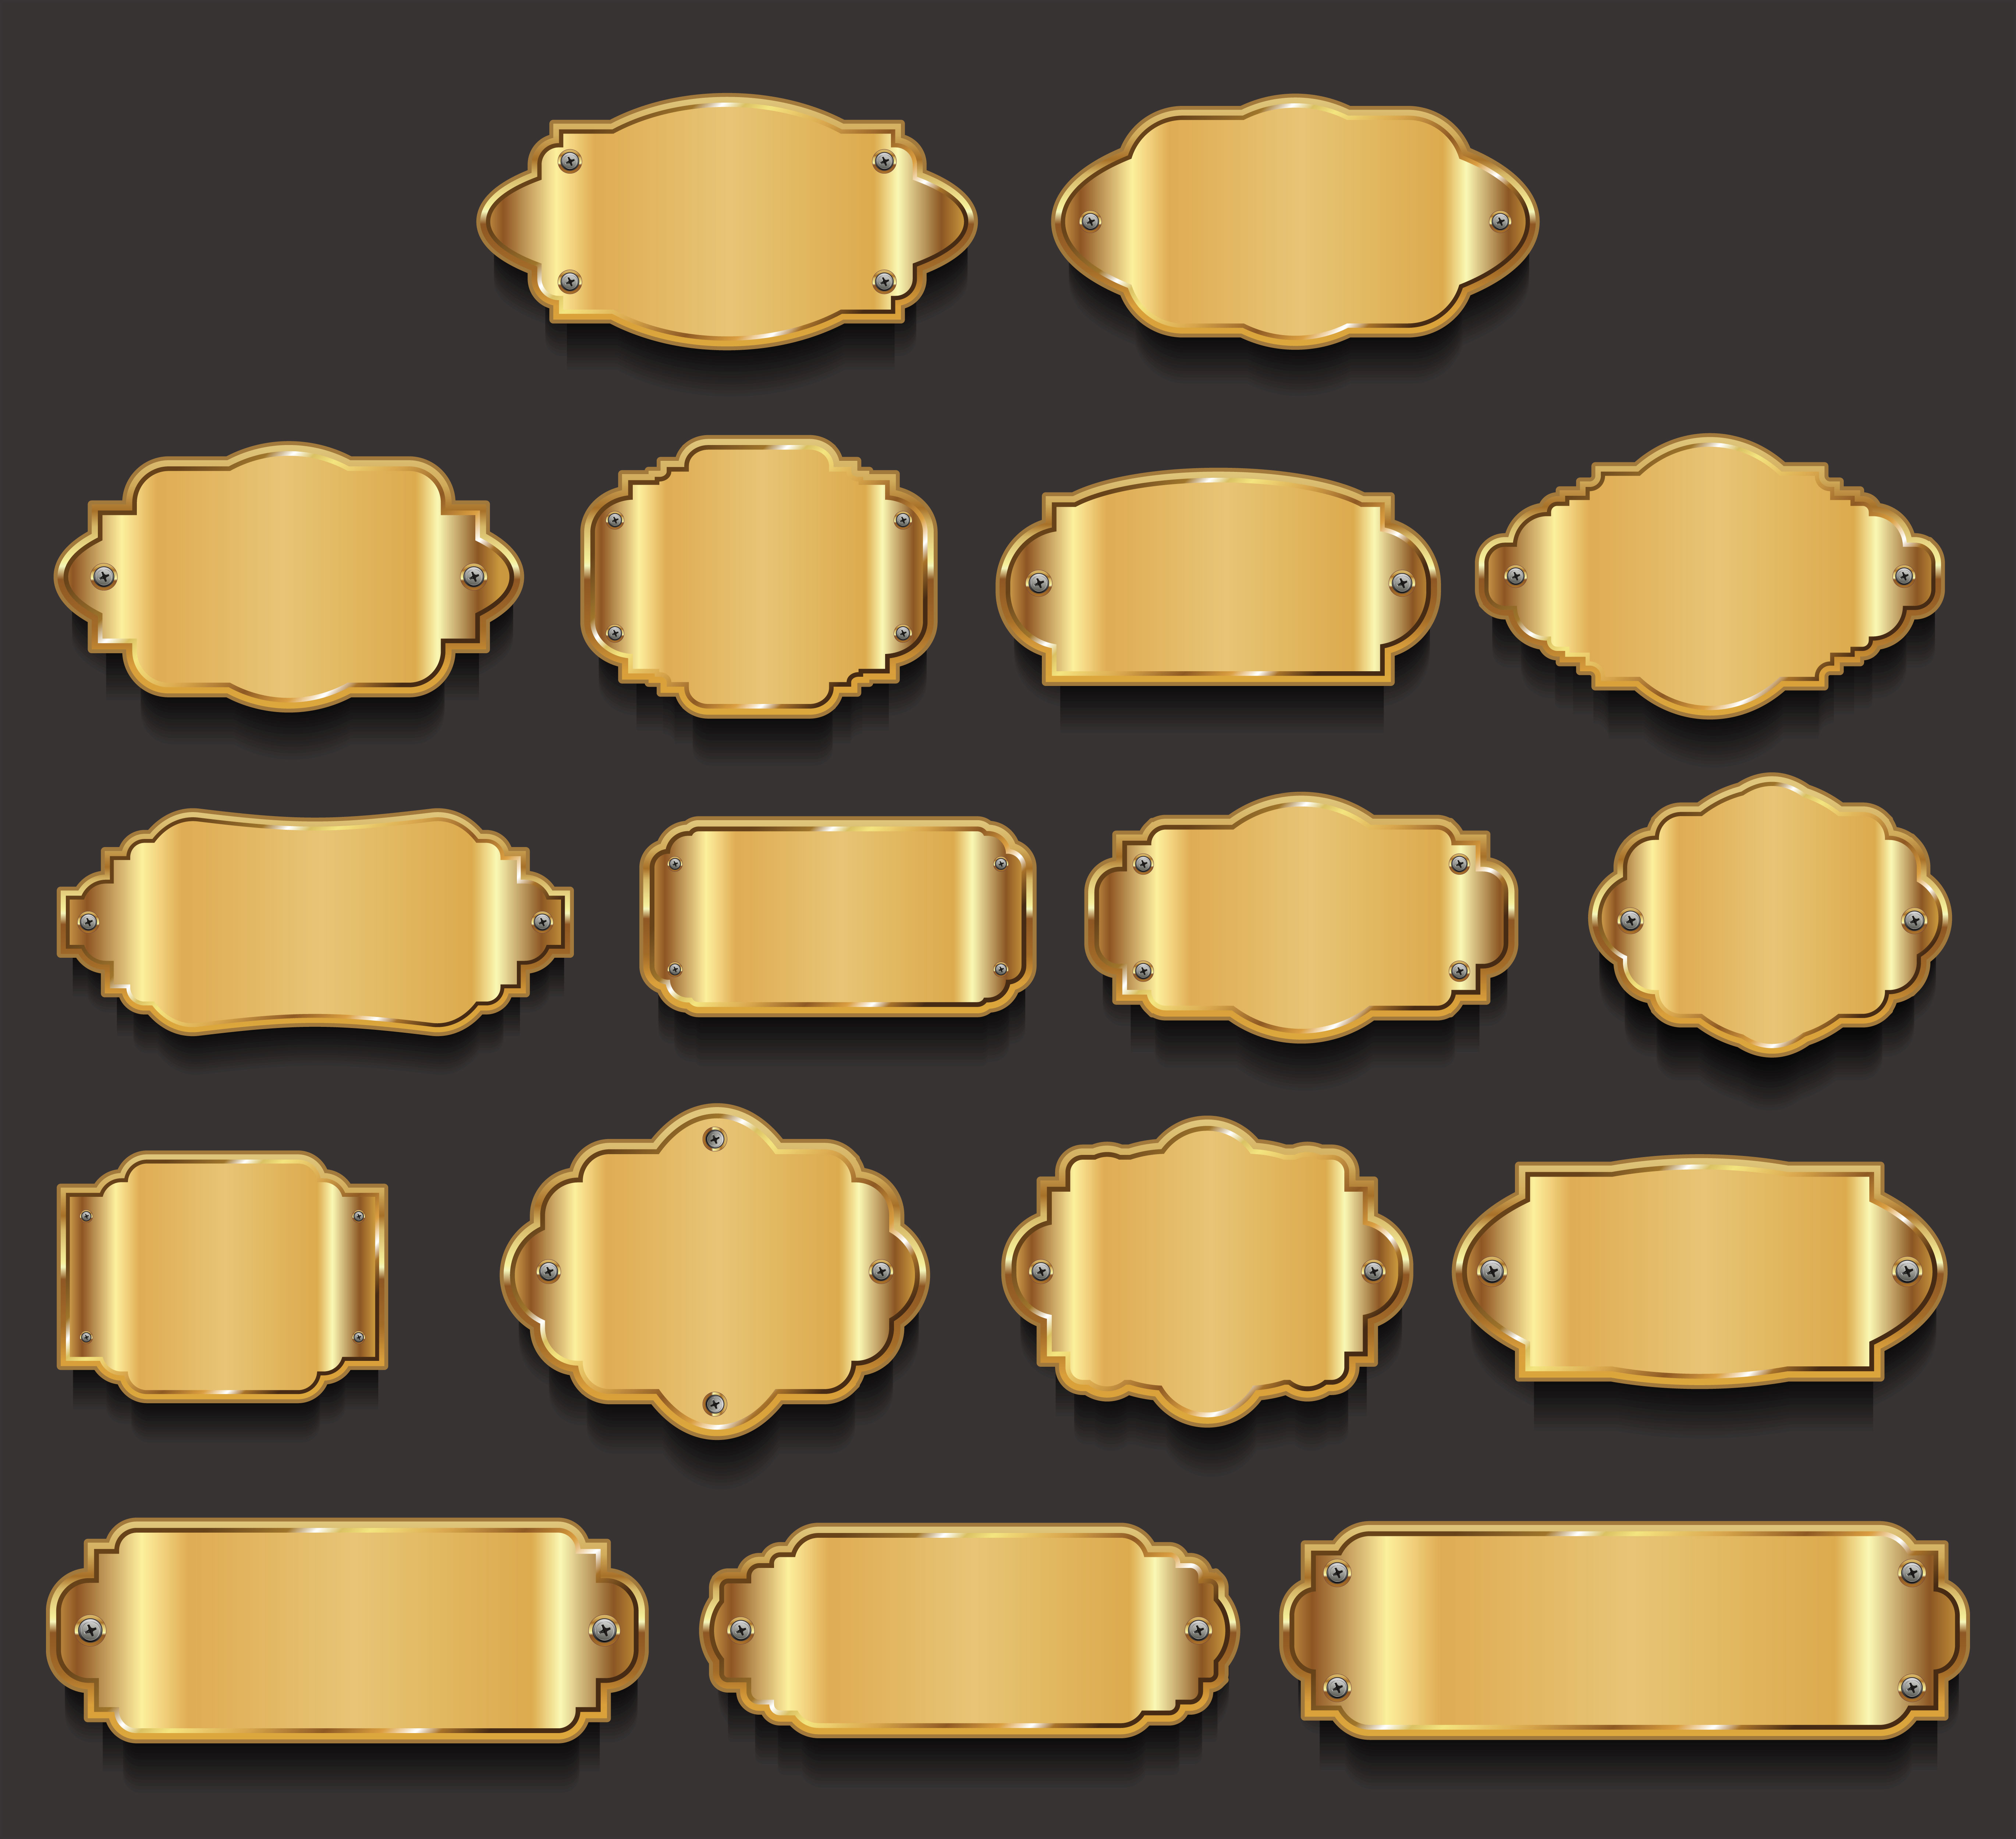 Alphabet Collection In Golden Color: Metal Plates Premium Quality Golden Collection